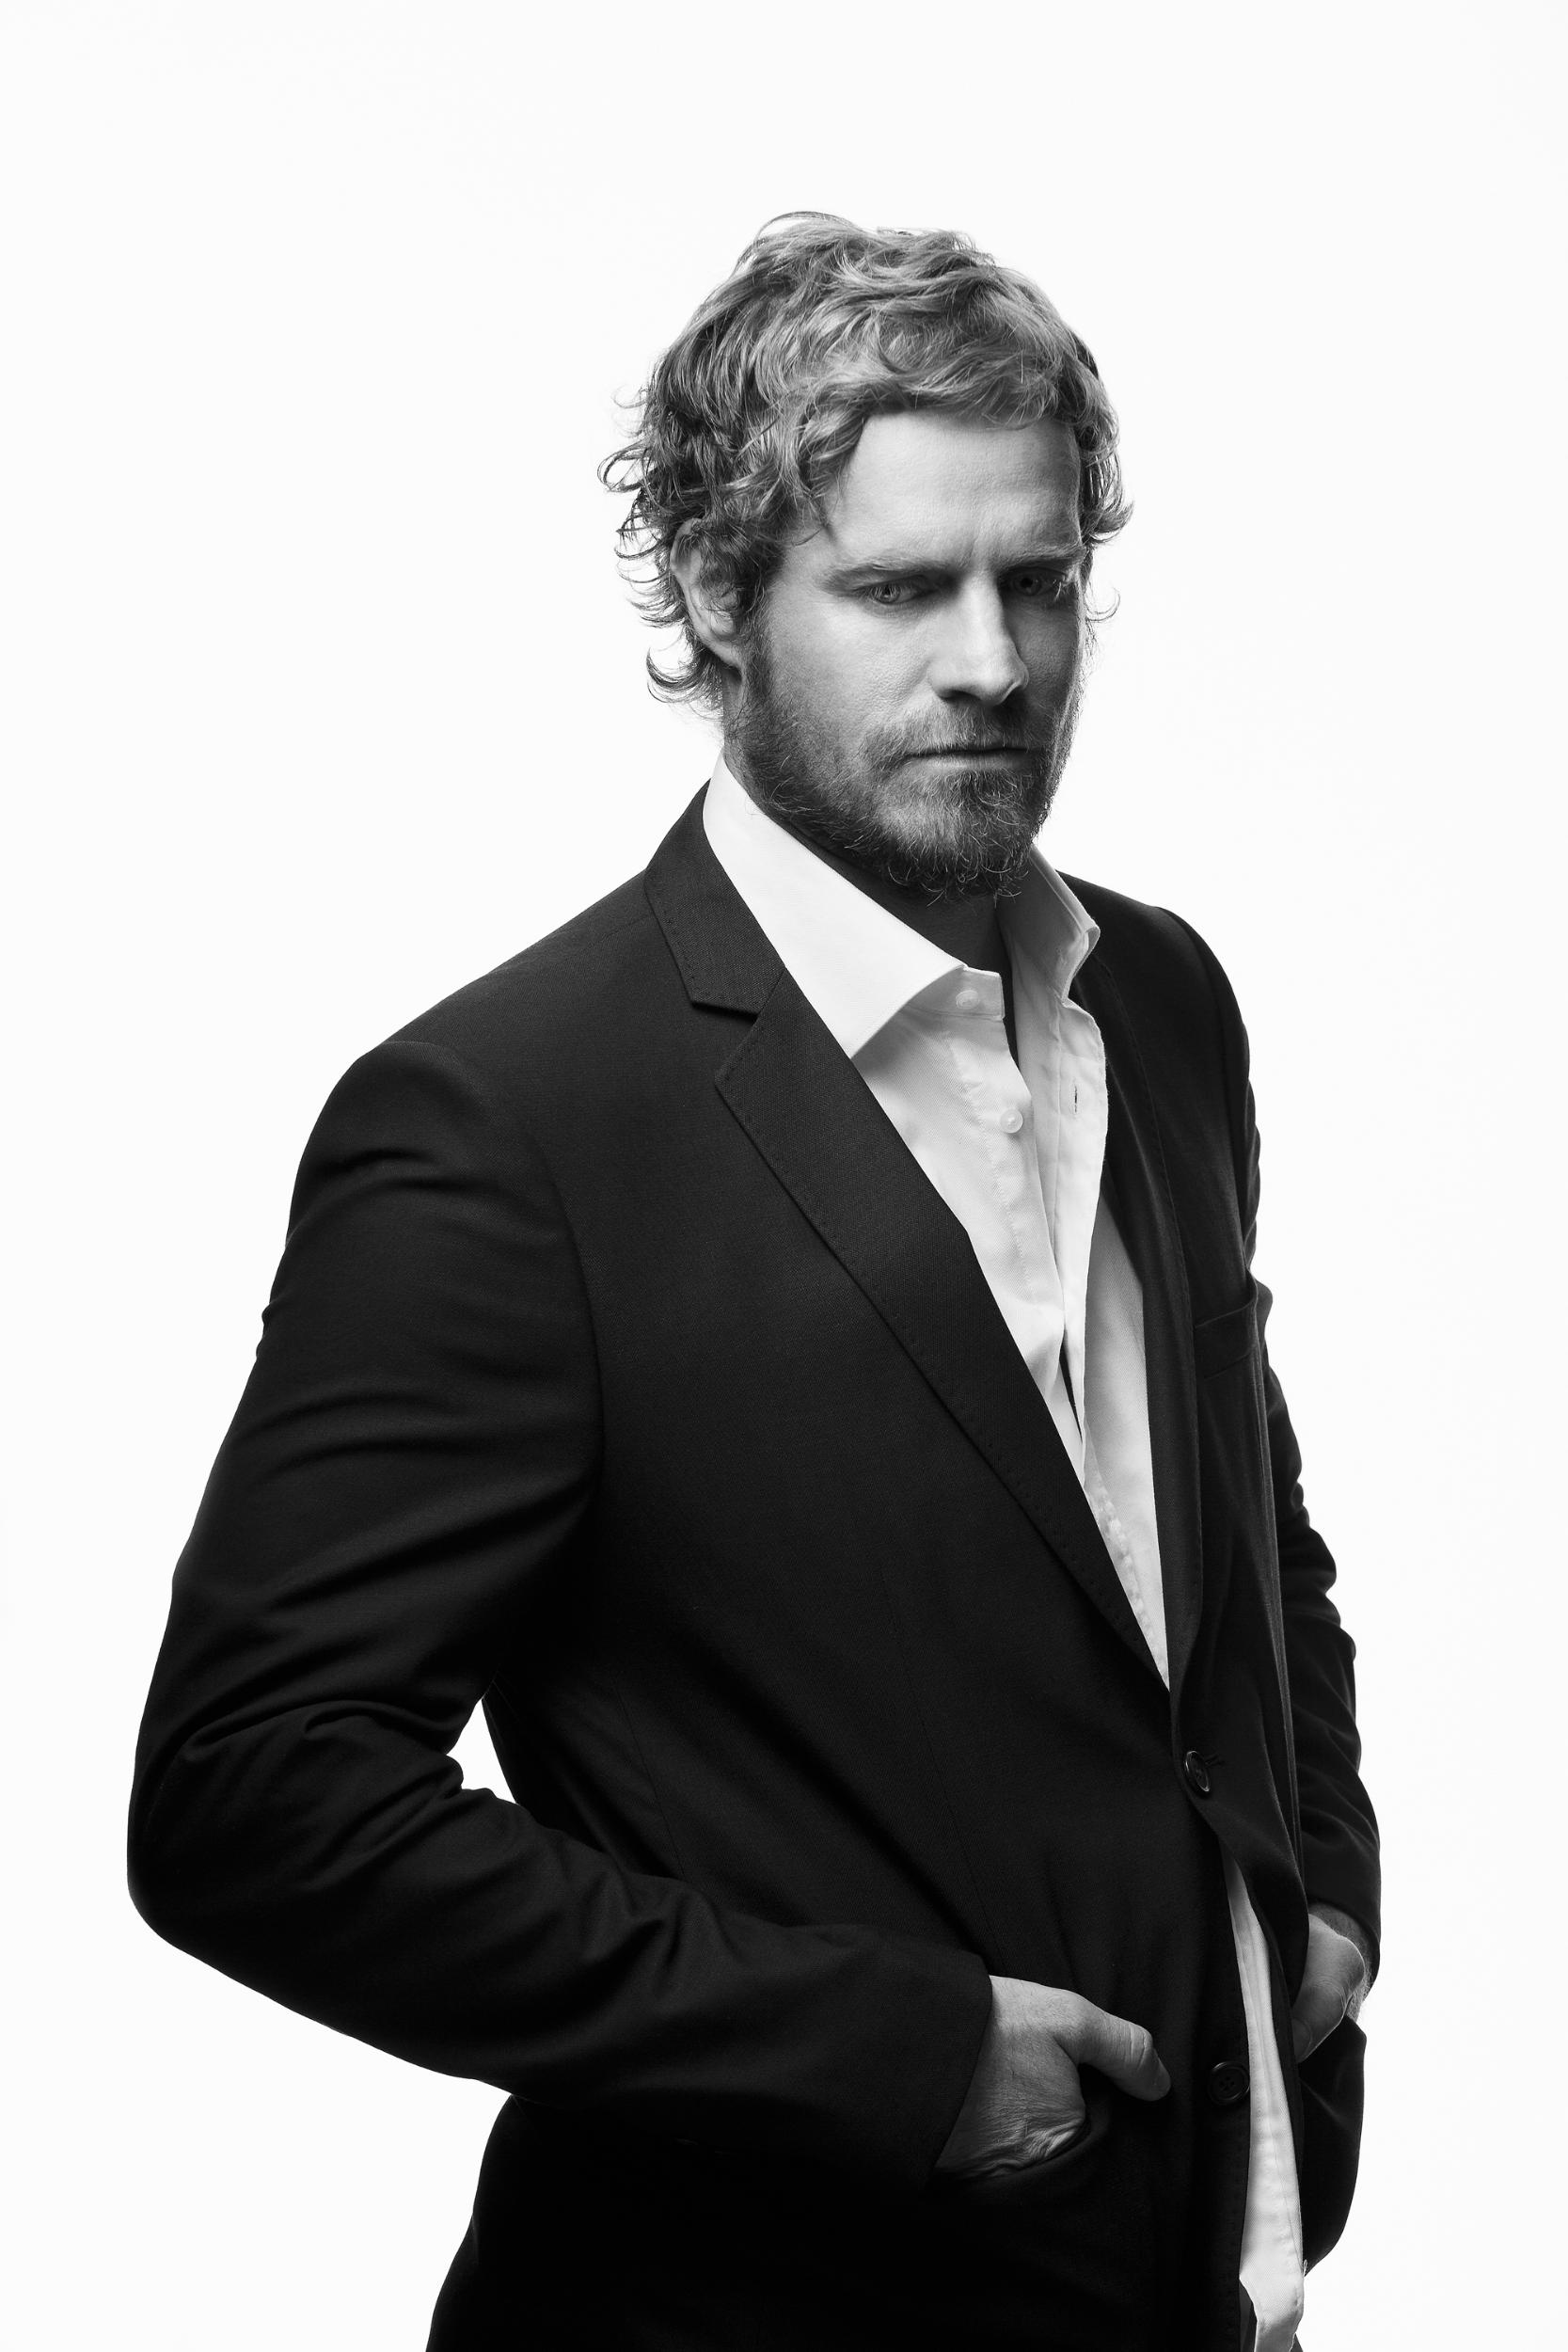 Paddlers will have the opportunity, thanks to long-time sponsors Hansa Pilsner, to listen to the addictive sound of Arno Carstens as he headlines the race after party at the popular Hops Riverside on Saturday, 18 February.